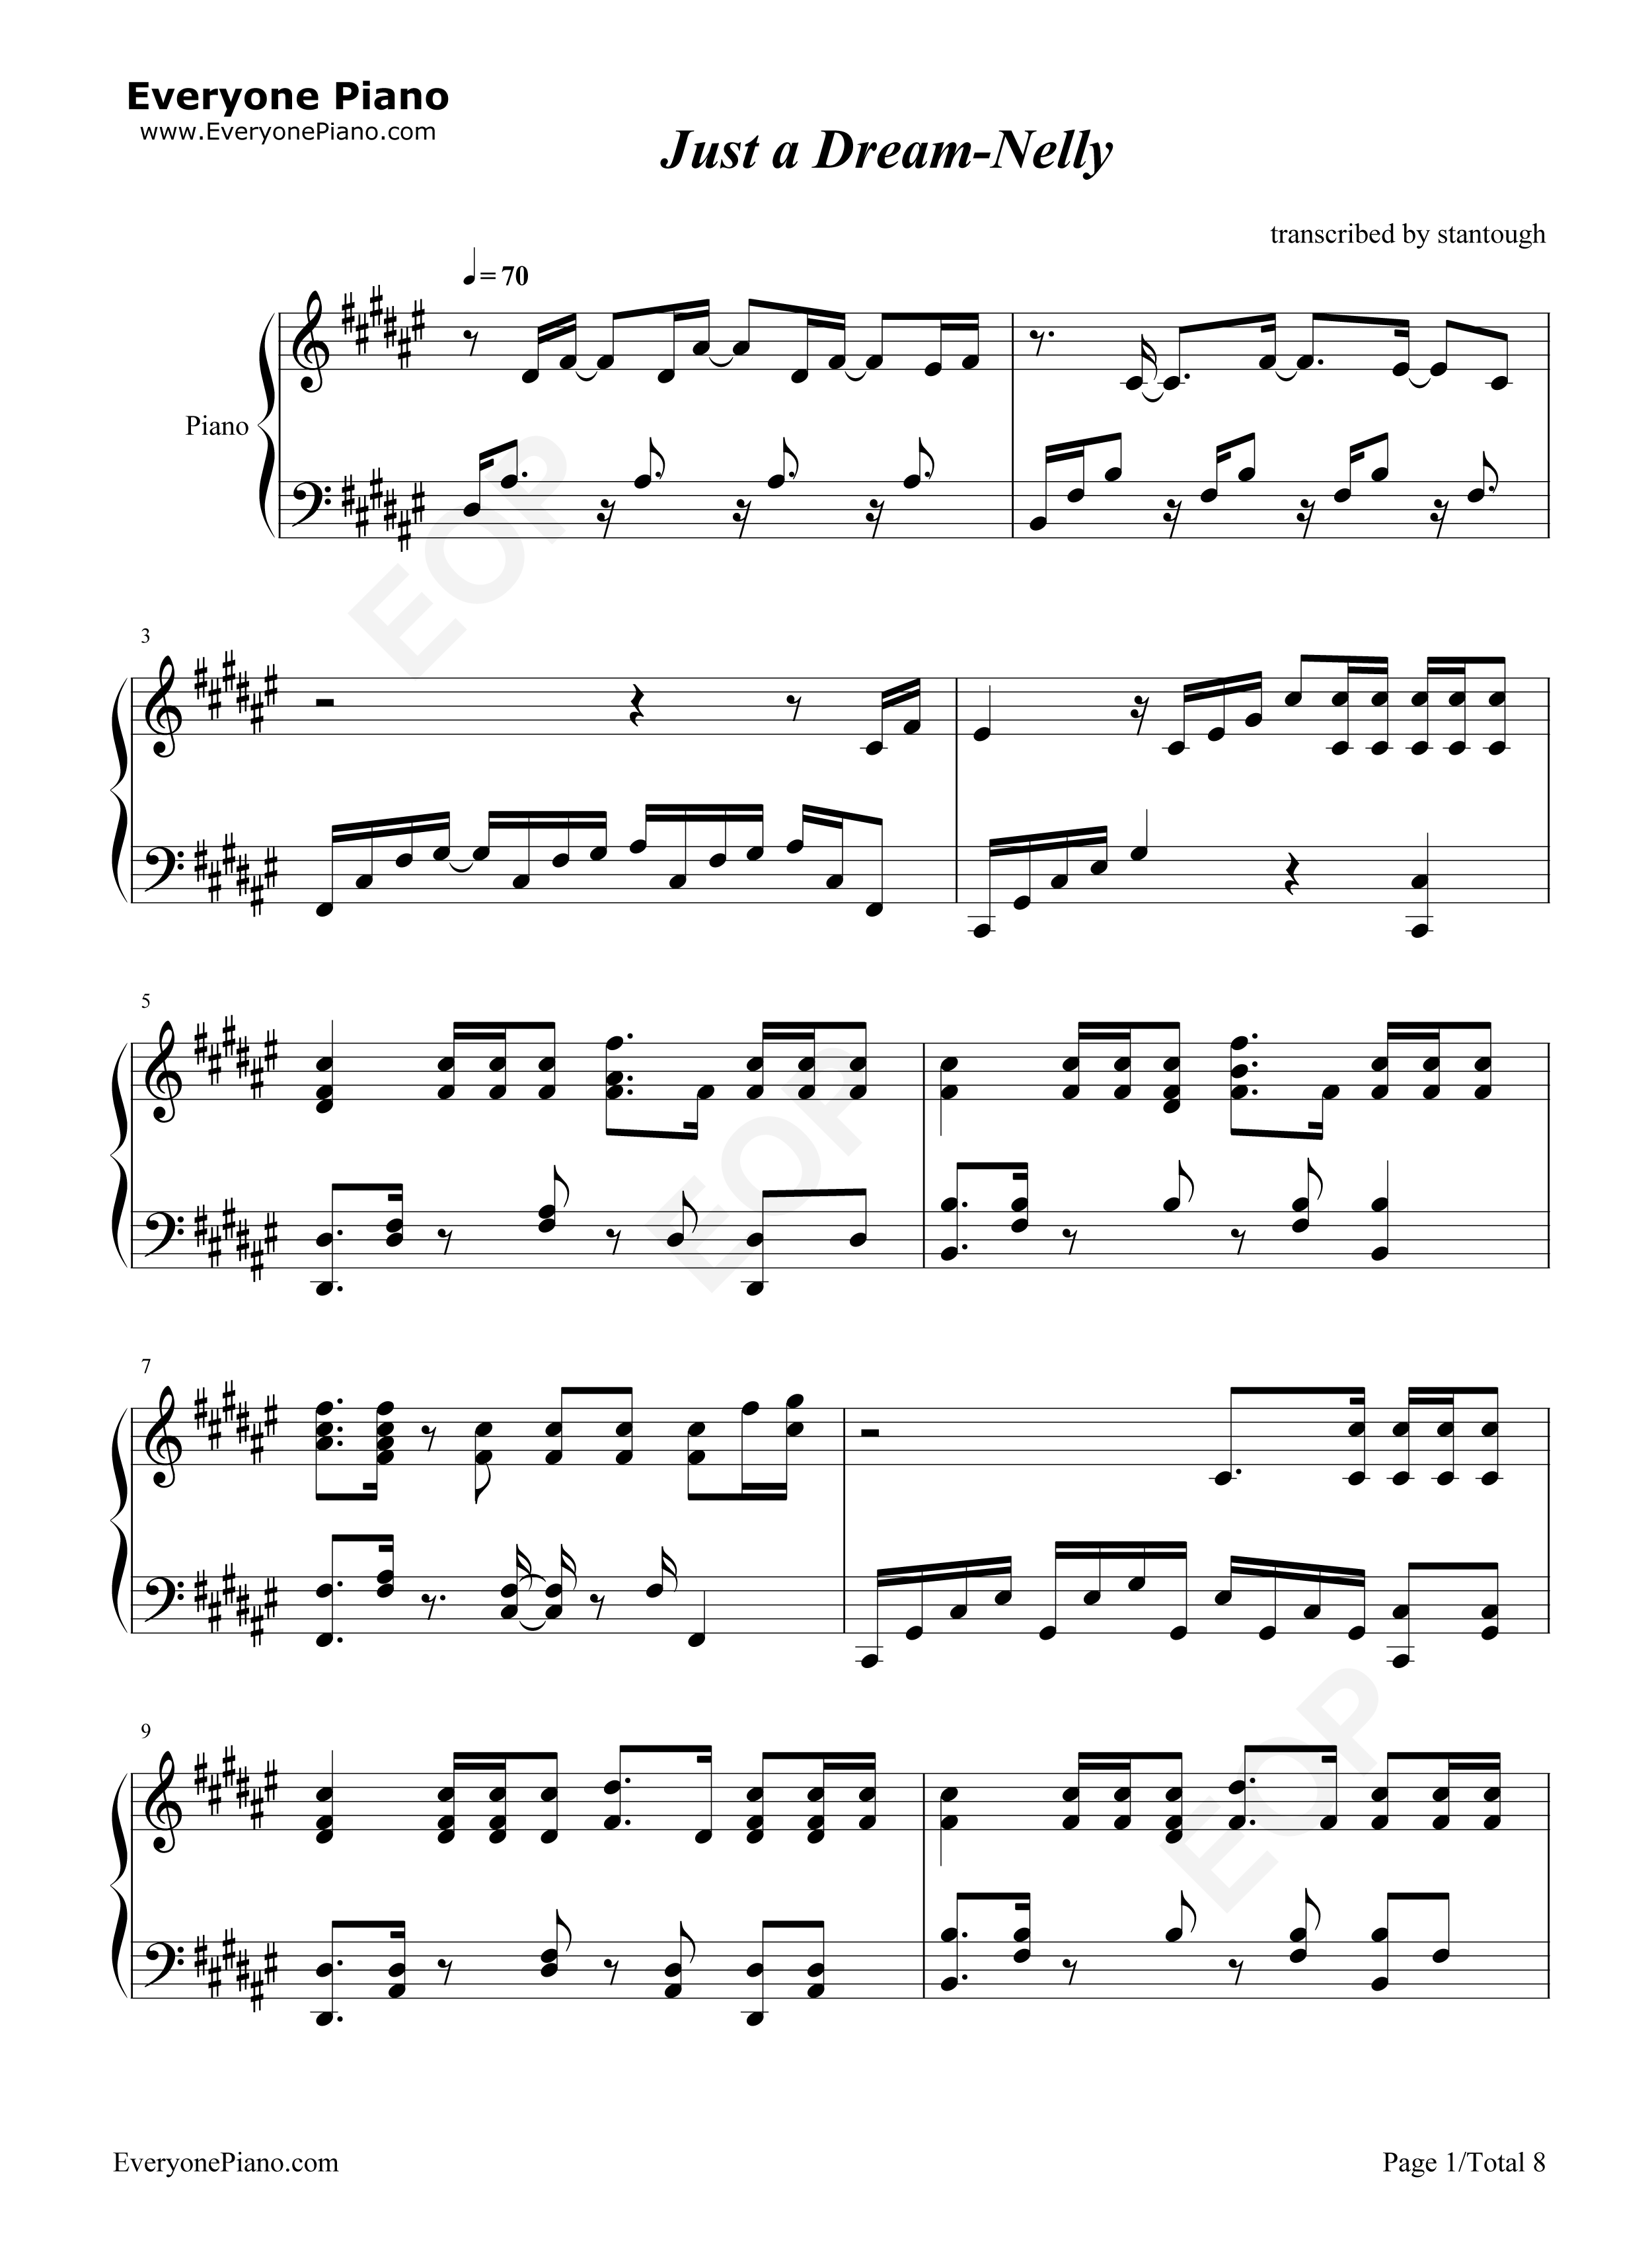 Just a dream nelly free piano sheet music piano chords just a dream nelly stave preview 1 hexwebz Image collections